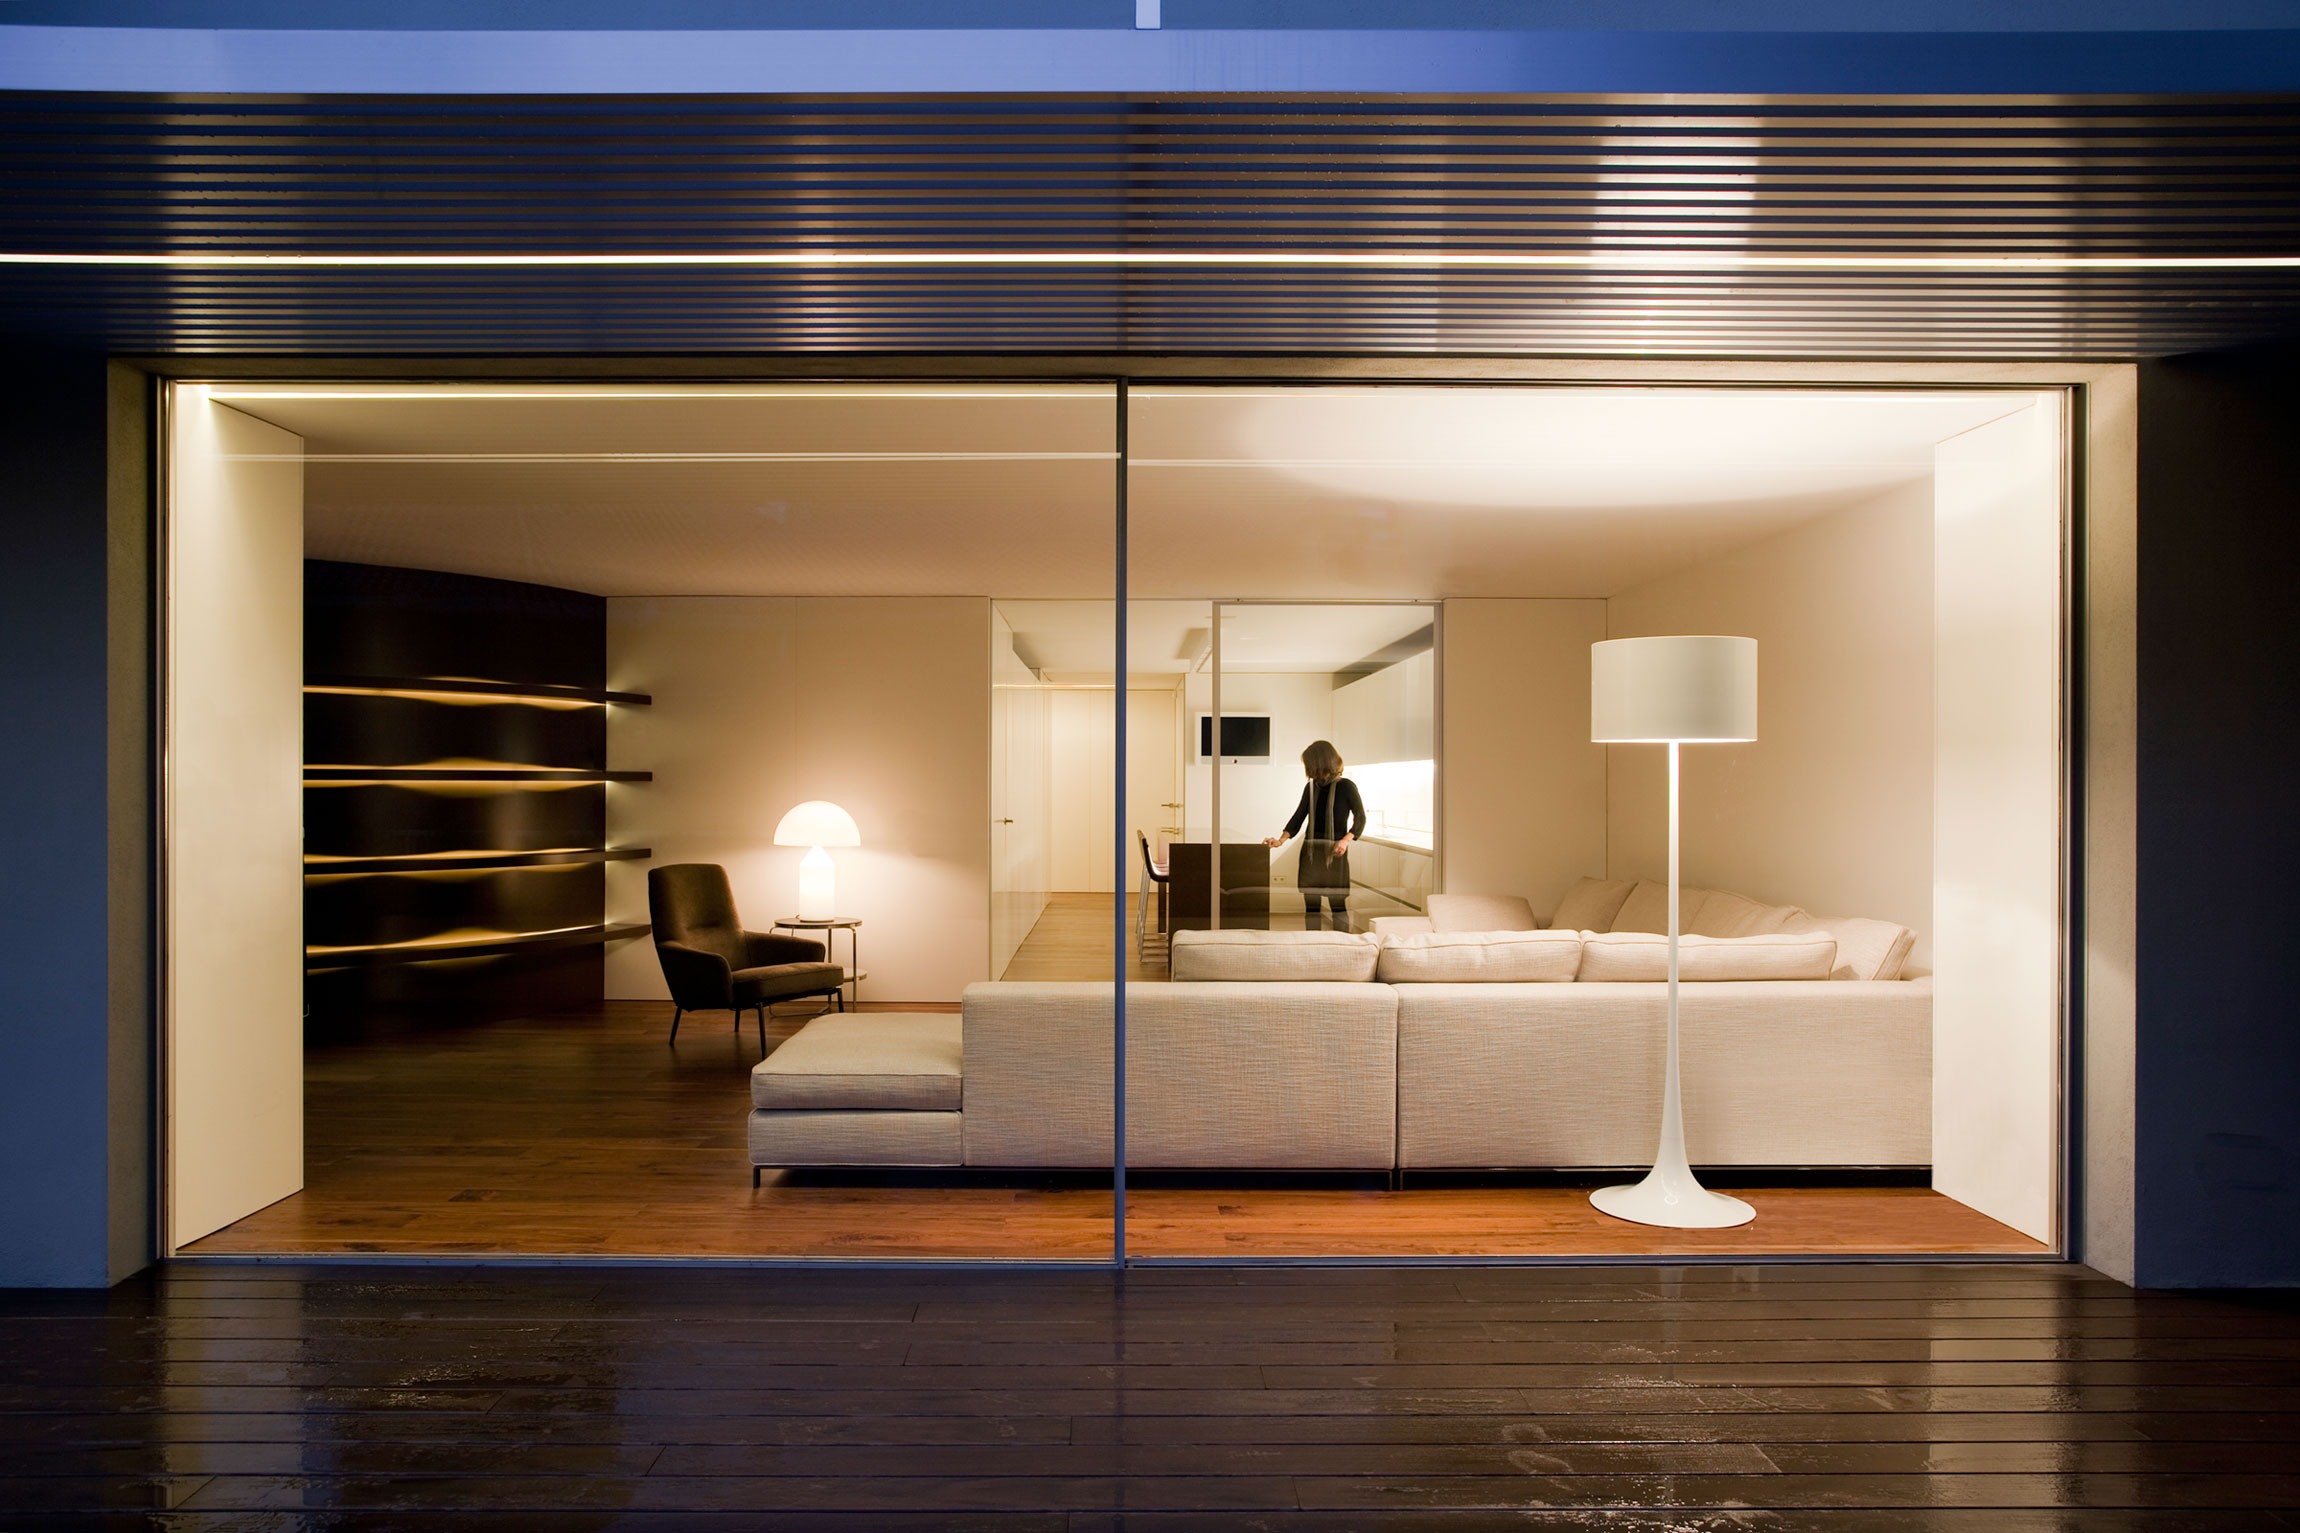 House Built Into the City by Fran Silvestre Arquitectos